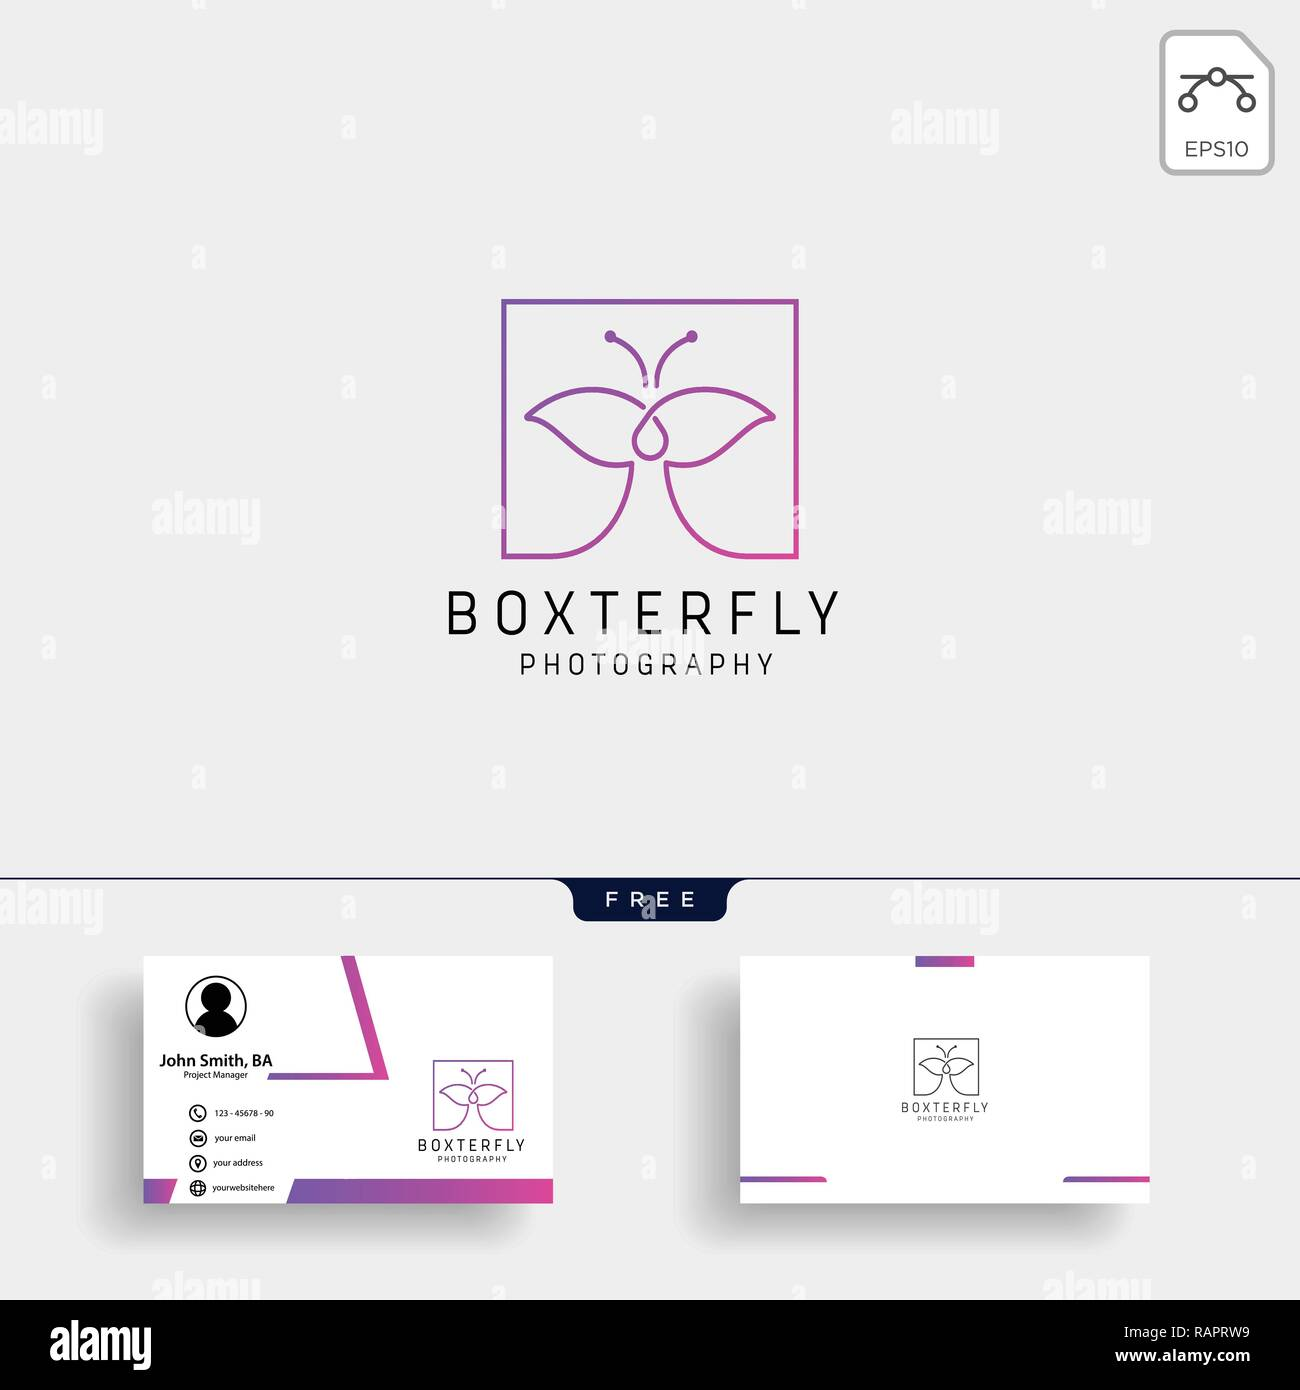 Butterfly Photography logo template with business card - Stock Vector